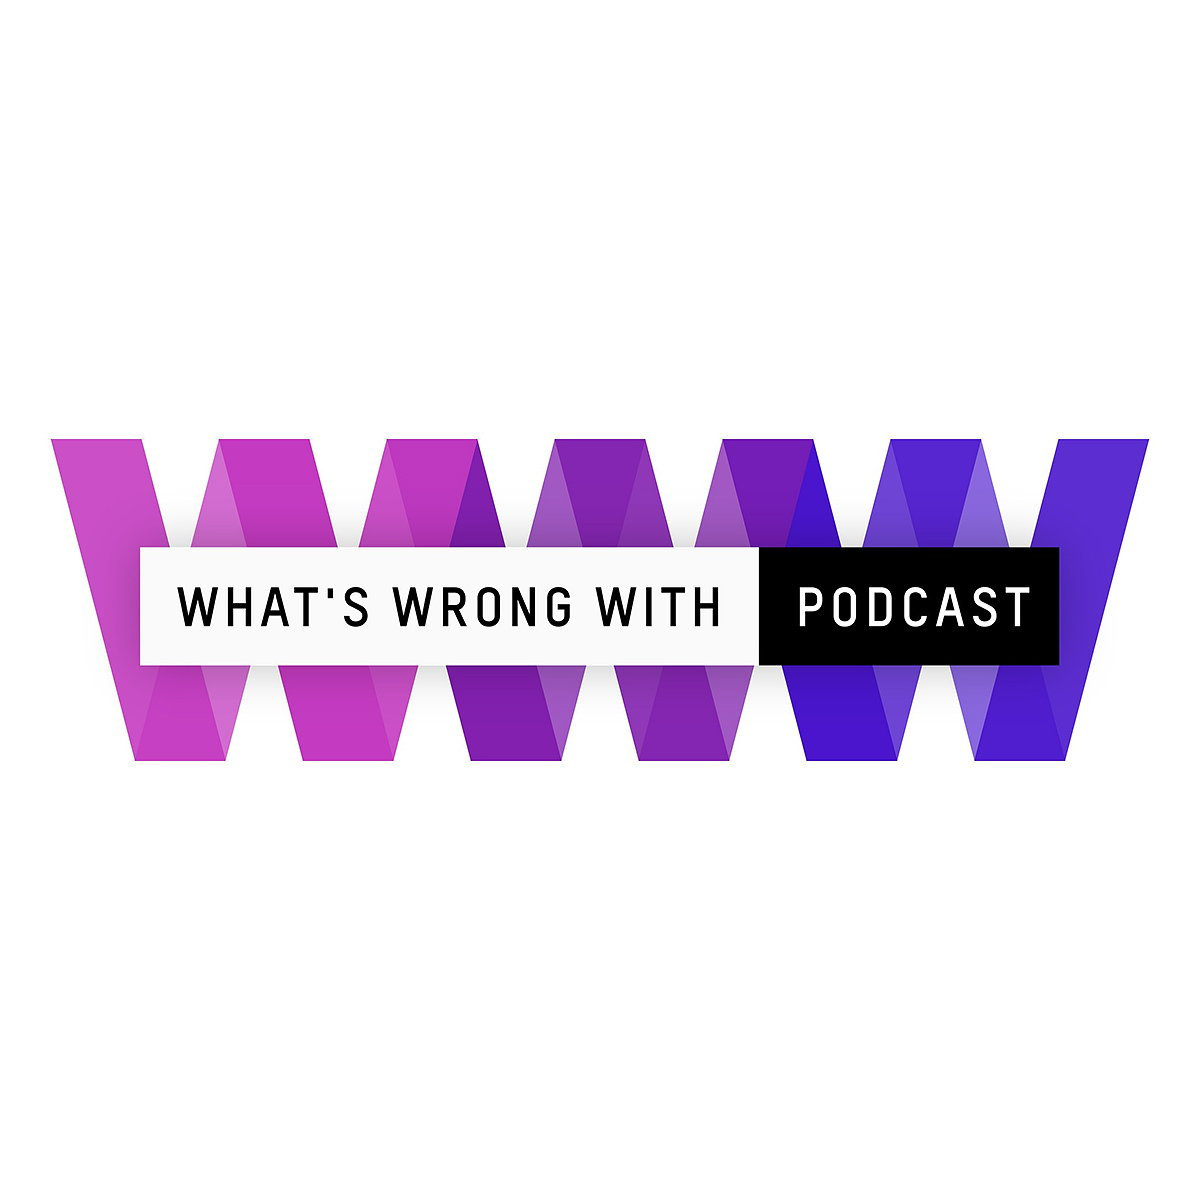 What's Wrong With Podcast by Eray/Carbajo